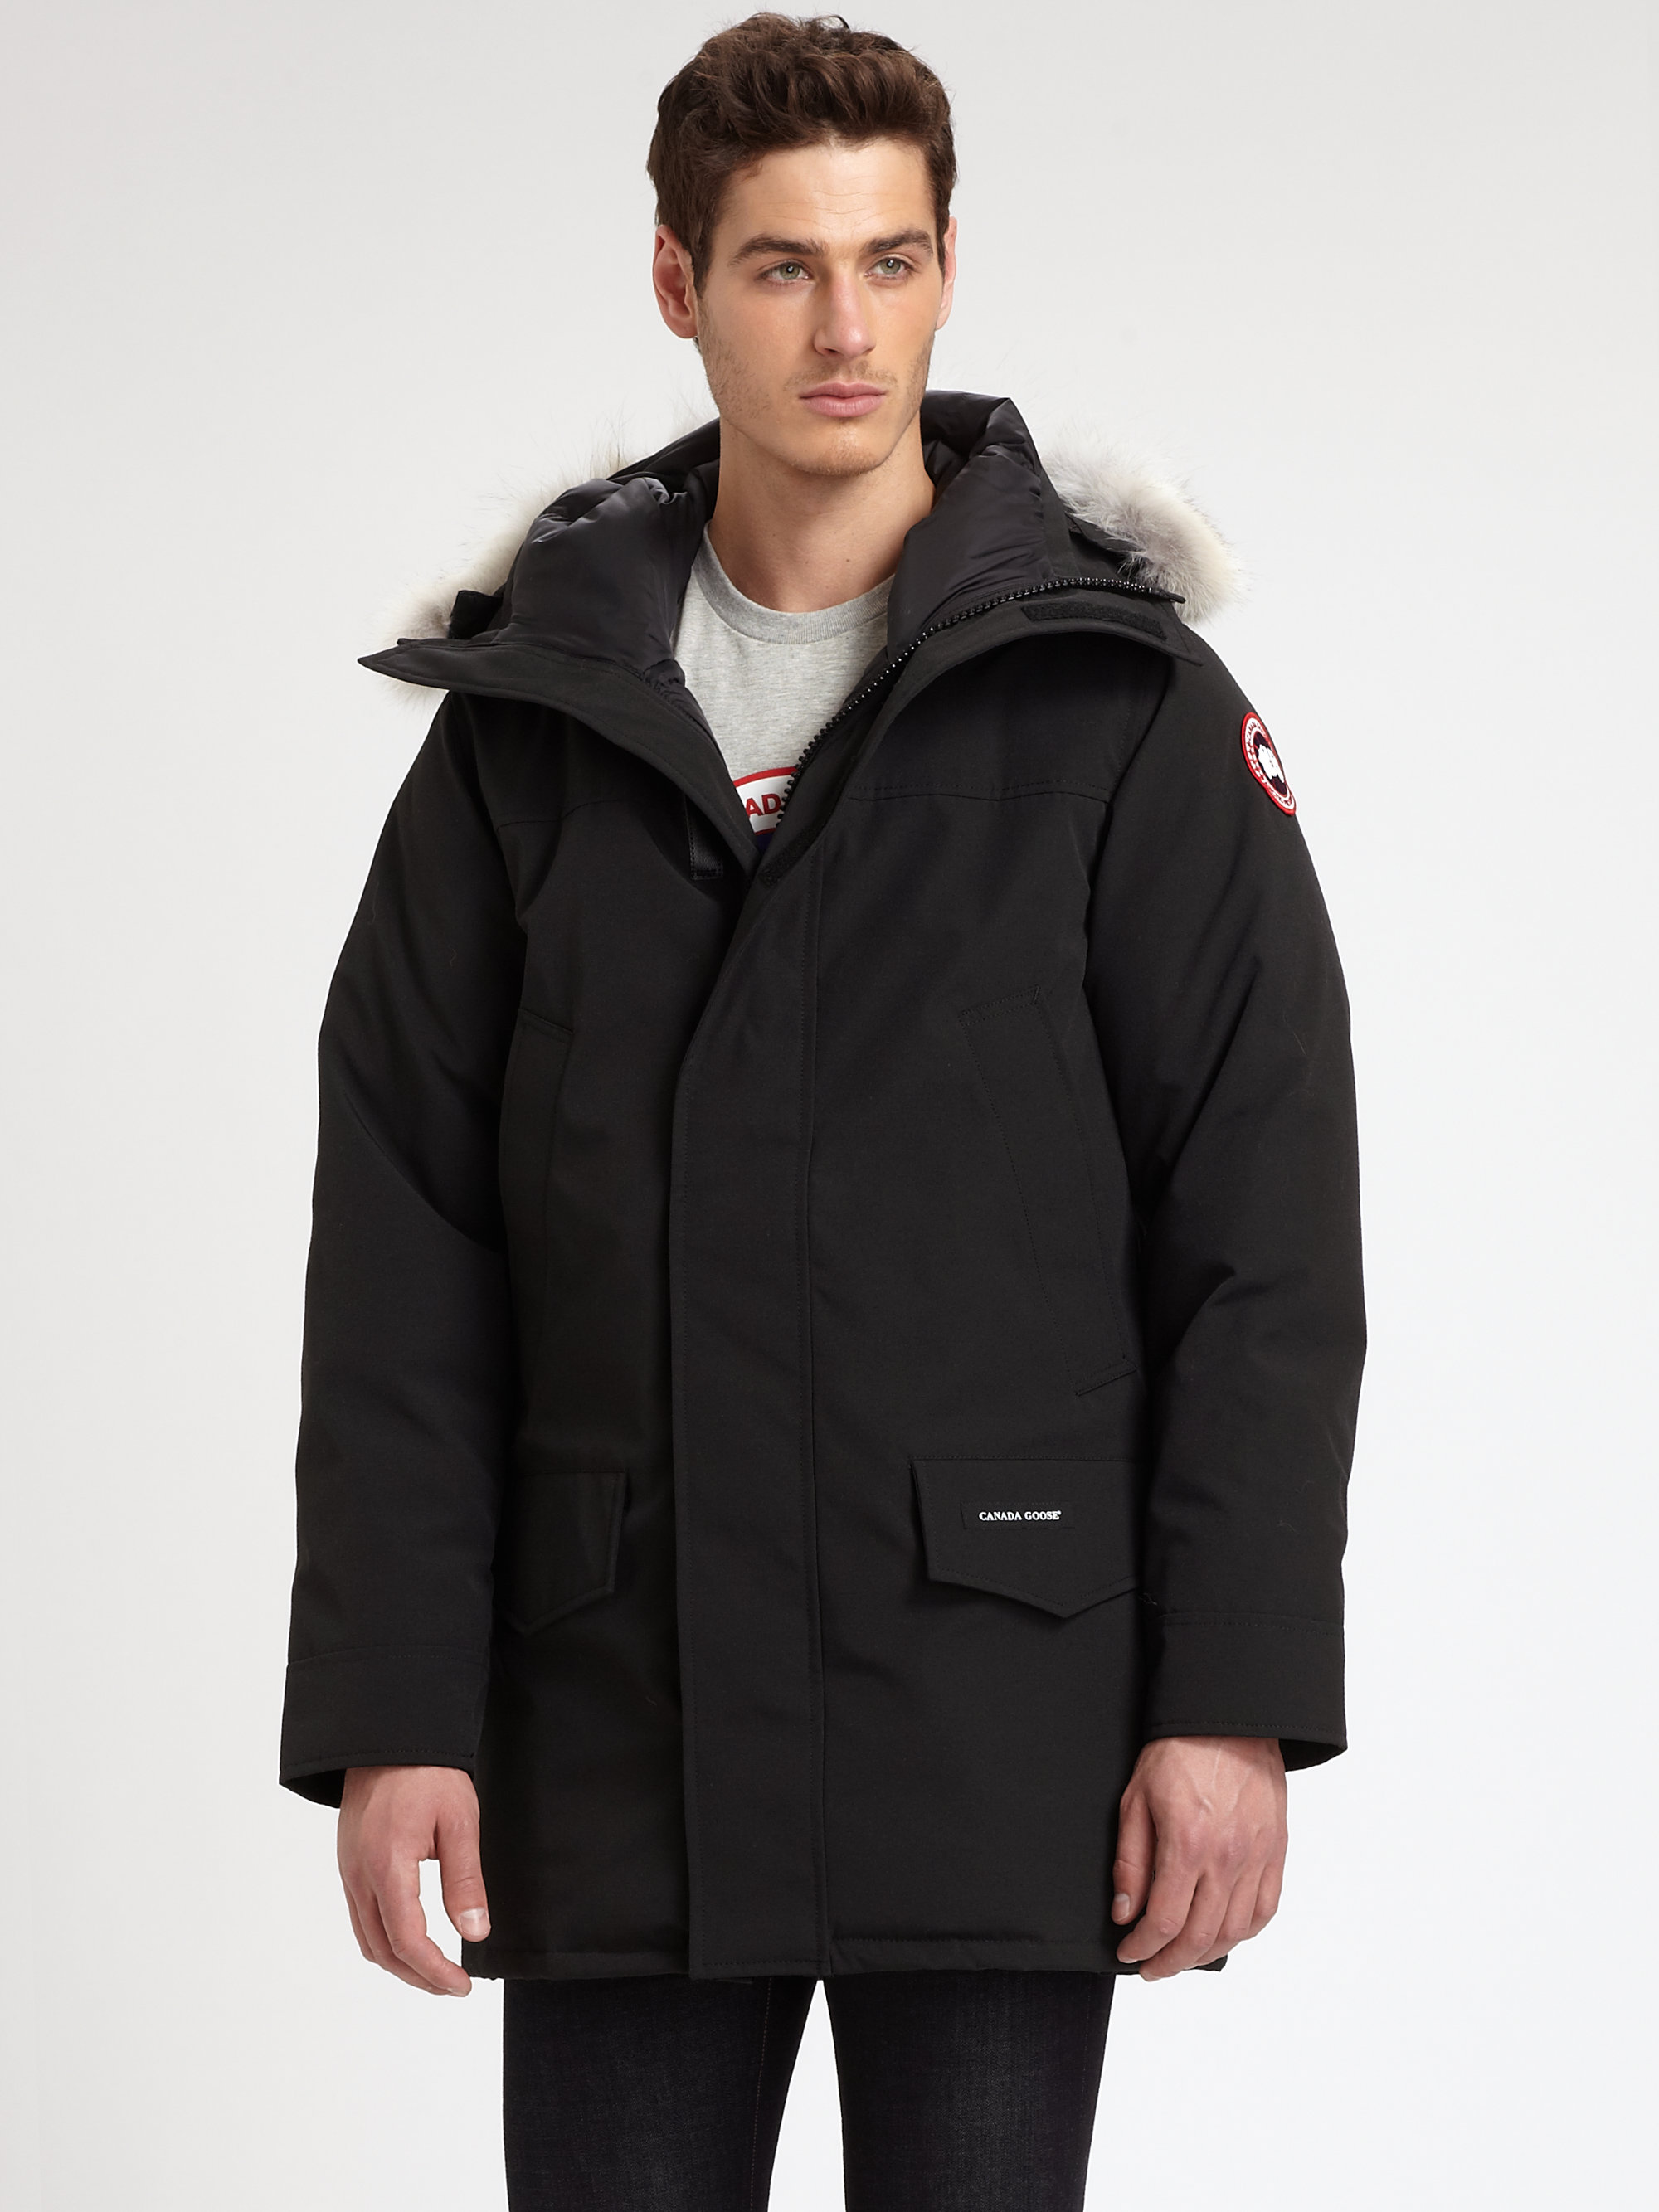 Canada Goose jackets sale authentic - Canada goose Langford Parka in Black for Men | Lyst